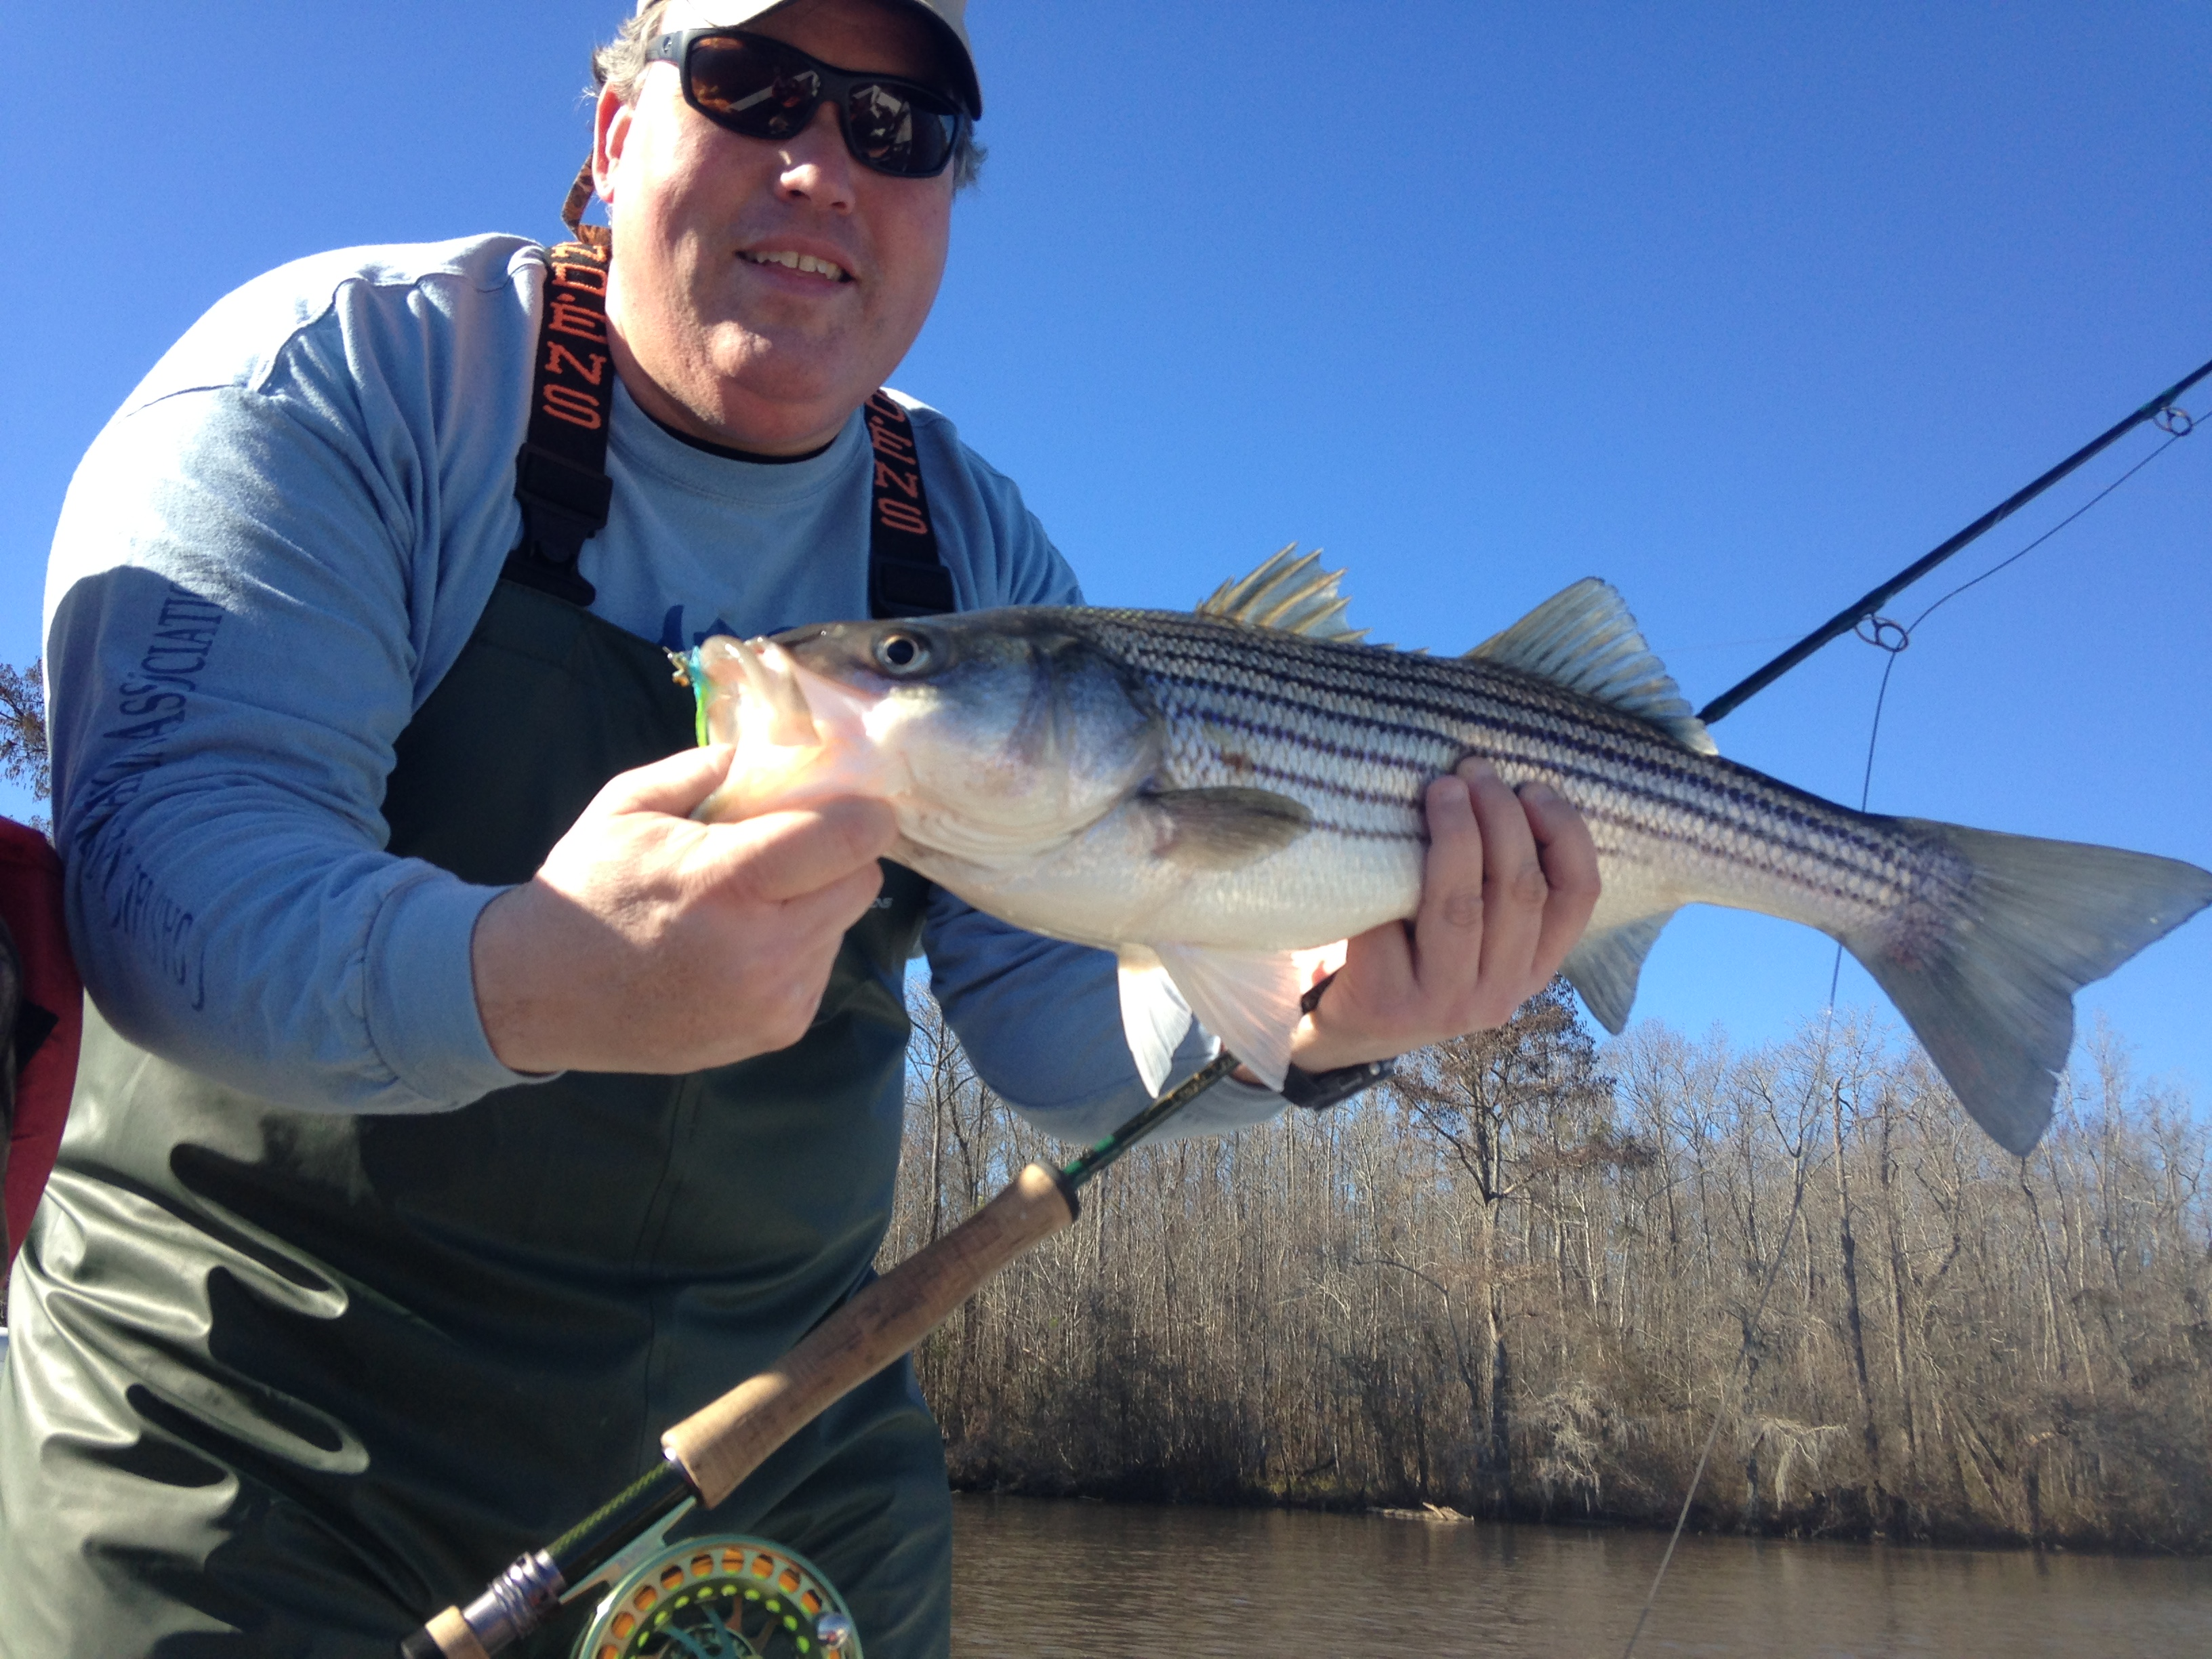 Fly stripers fishibx eastern nc fishing guide for Northeast saltwater fishing reports